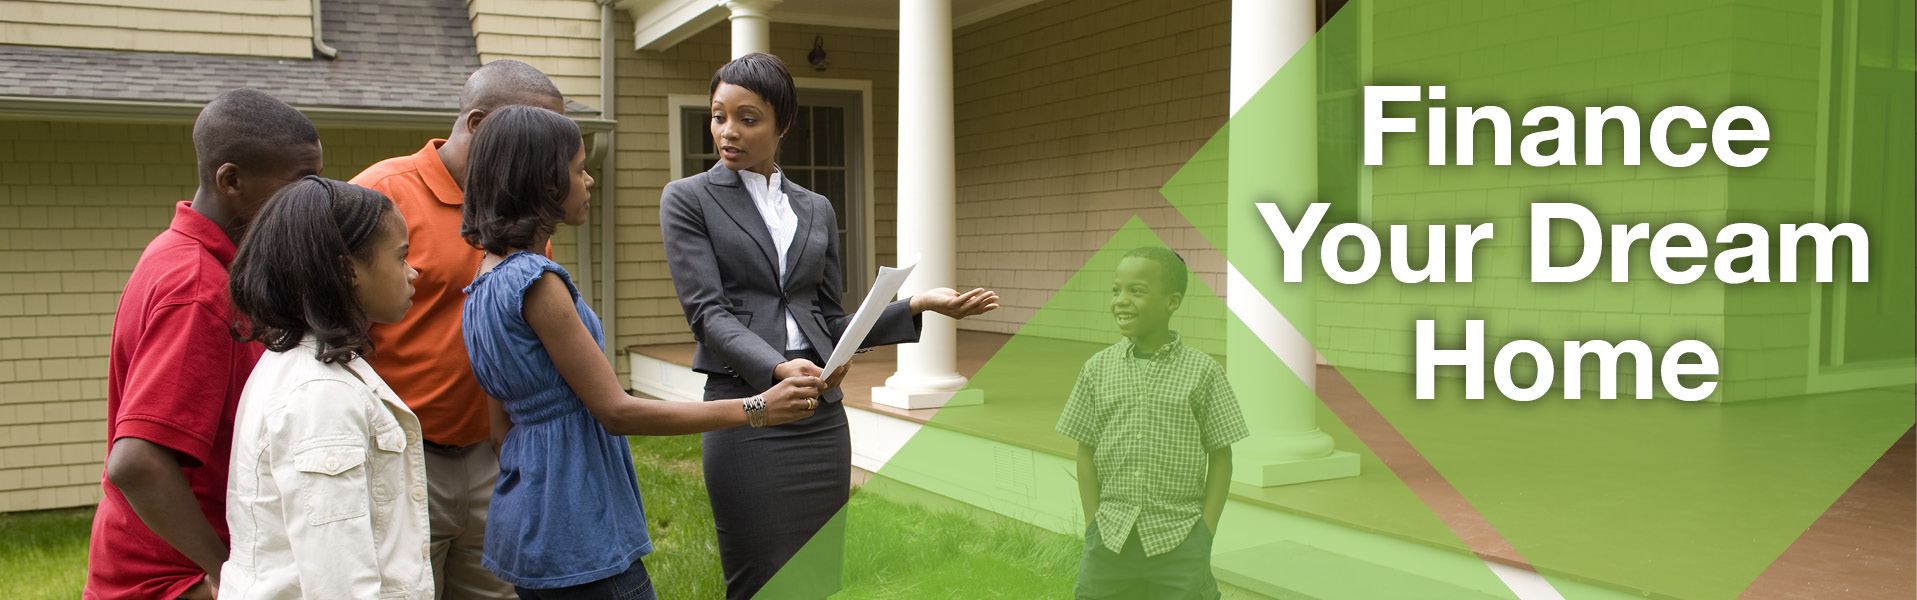 Financing Your Dream Home